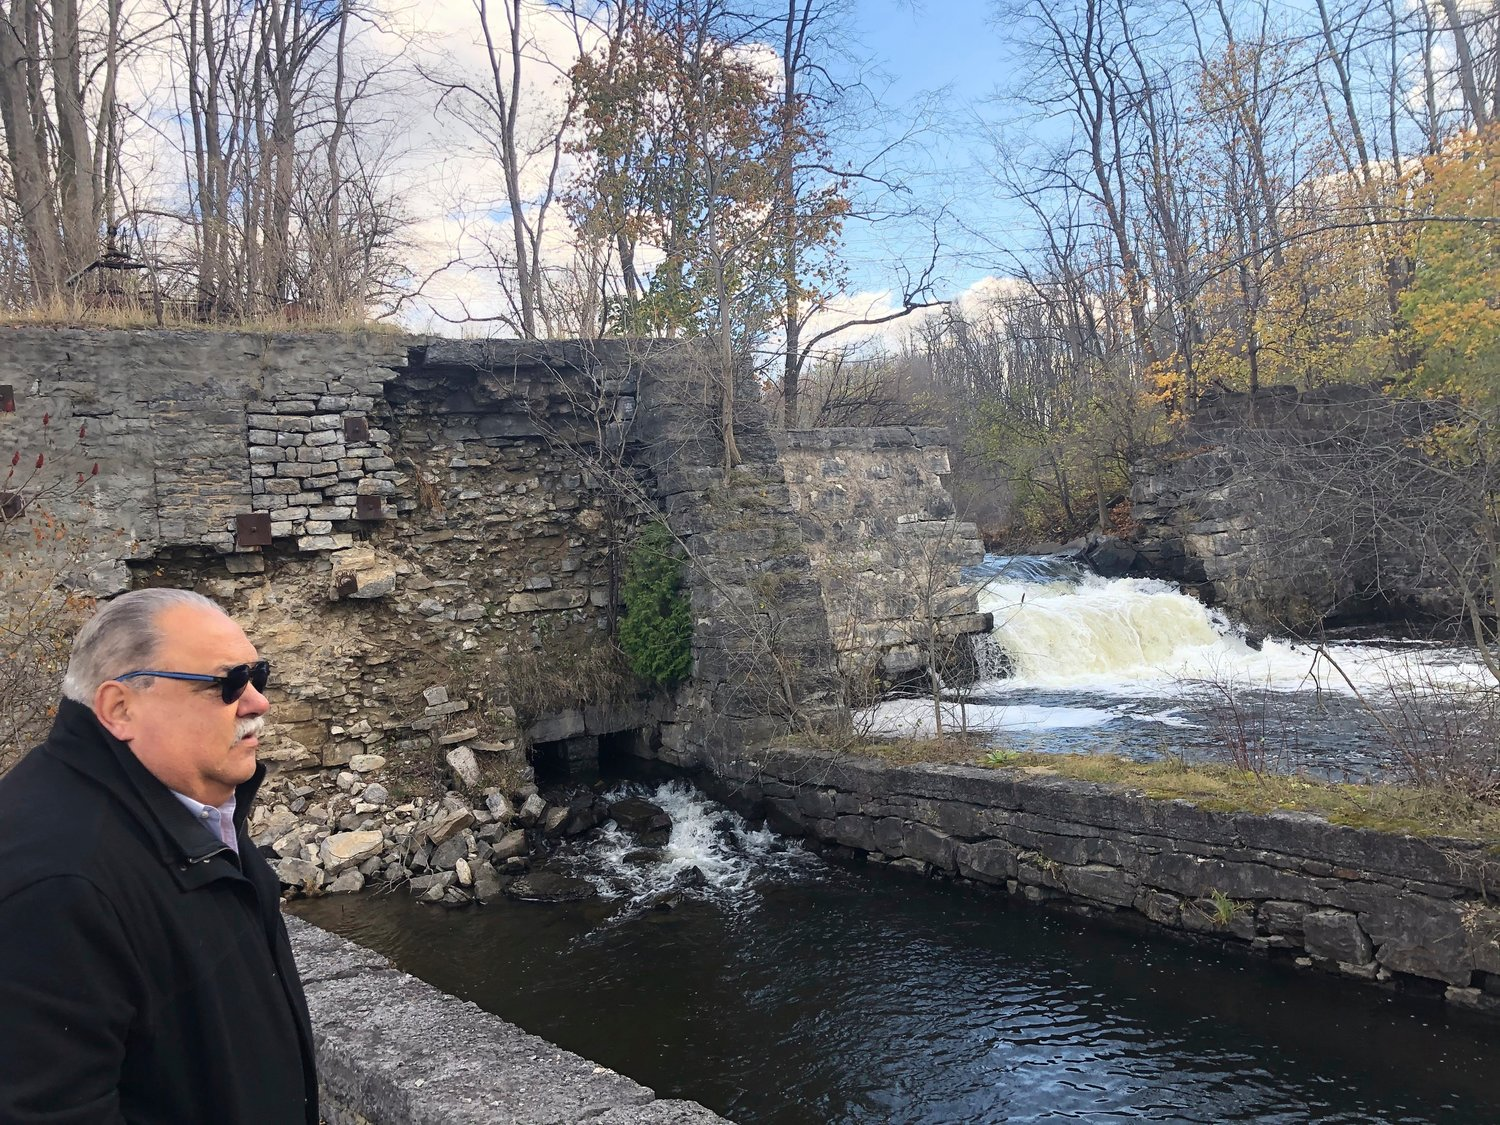 In this Wednesday, Nov. 6, 2019 photo, Amsterdam Town Supervisor Tom DiMezza stands beside the Harrower Pond Dam in Amsterdam, N.Y., one of 48 high hazard dams in poor or unsatisfactory condition in New York state. State inspectors have noted numerous problems including cracks, seepage, fallen stones and trees growing on dam structures. The center of the dam has been breached by the state Department of Environmental Conservation to reduce the volume of impounded water. (AP Photo/Mary Esch)